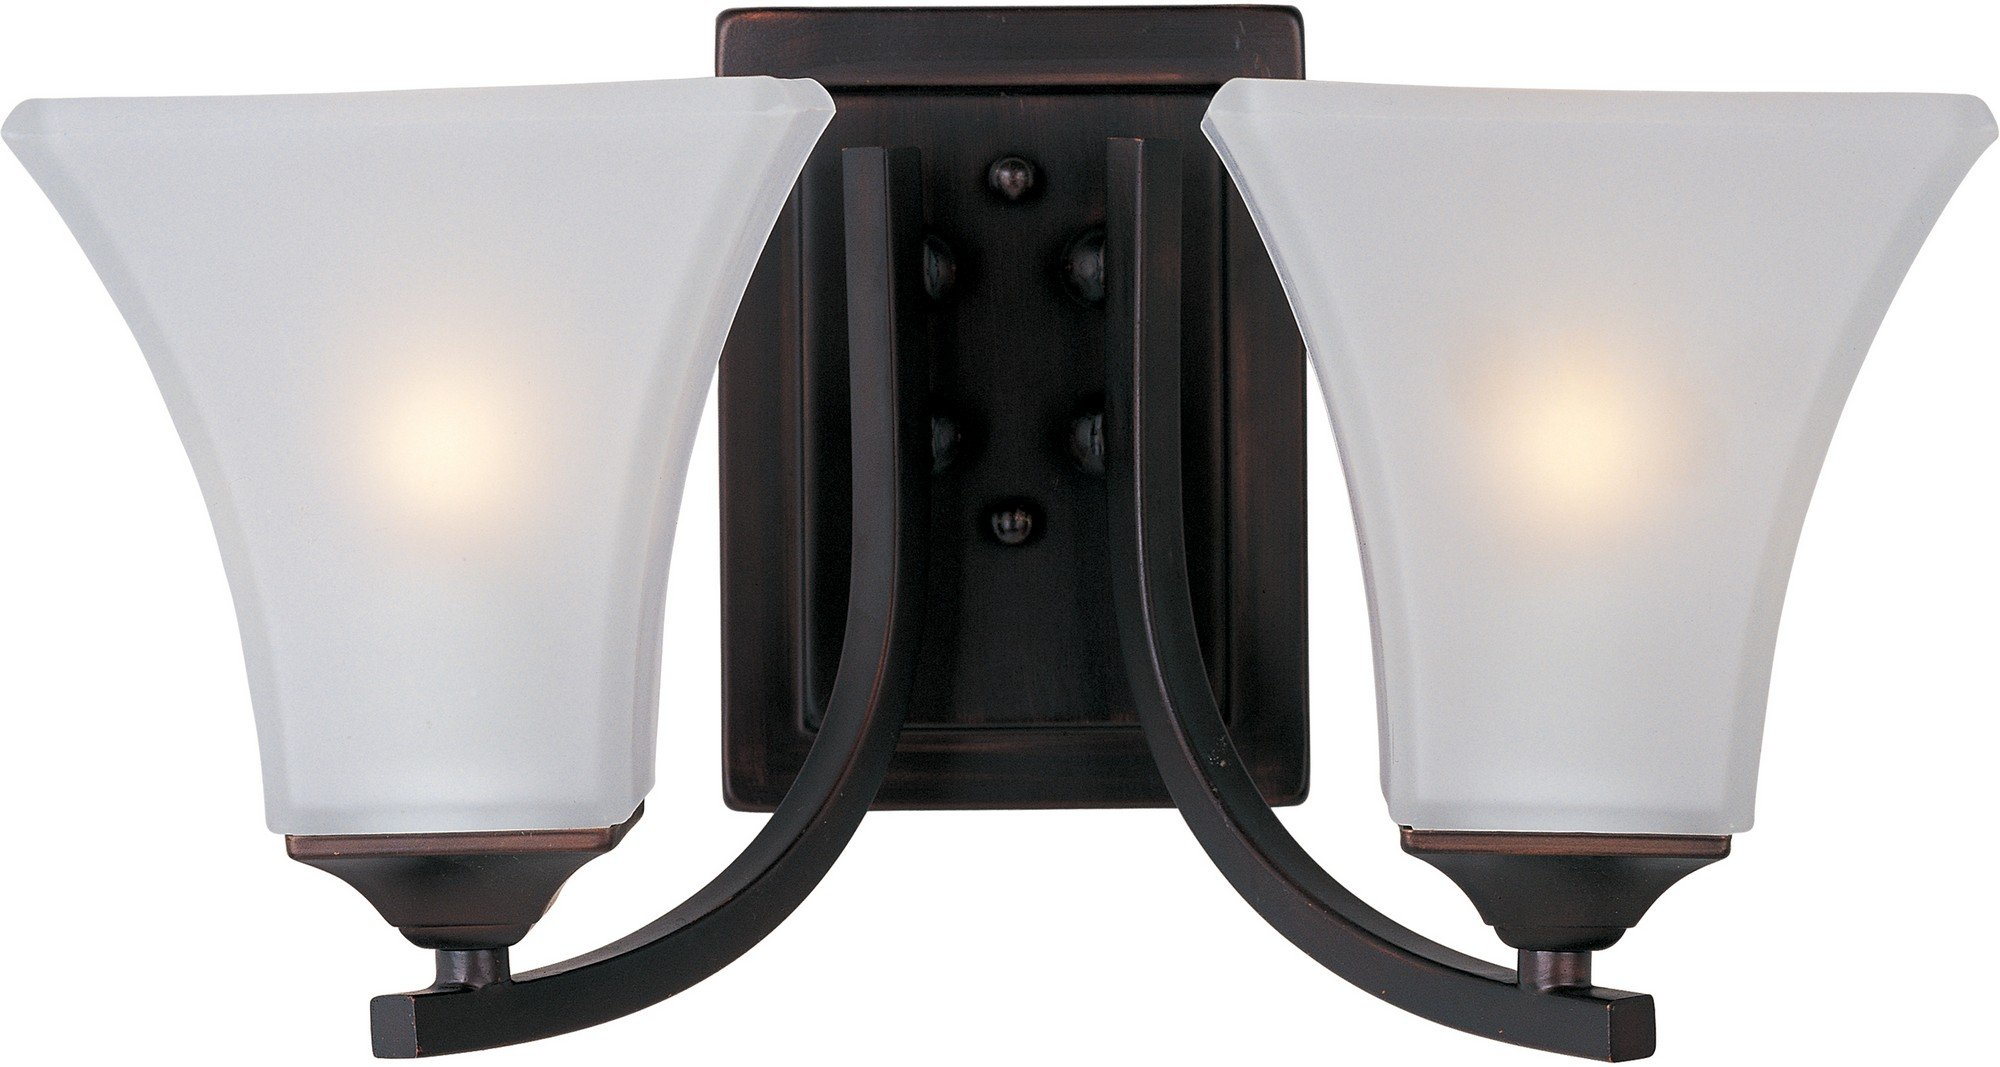 Maxim 20099FTOI Aurora 2-Light Bath Vanity Wall Sconce, Oil Rubbed Bronze Finish, Frosted Glass, MB Incandescent Incandescent Bulb , 60W Max., Damp Safety Rating, Standard Dimmable, Hemp String Shade Material, Rated Lumens